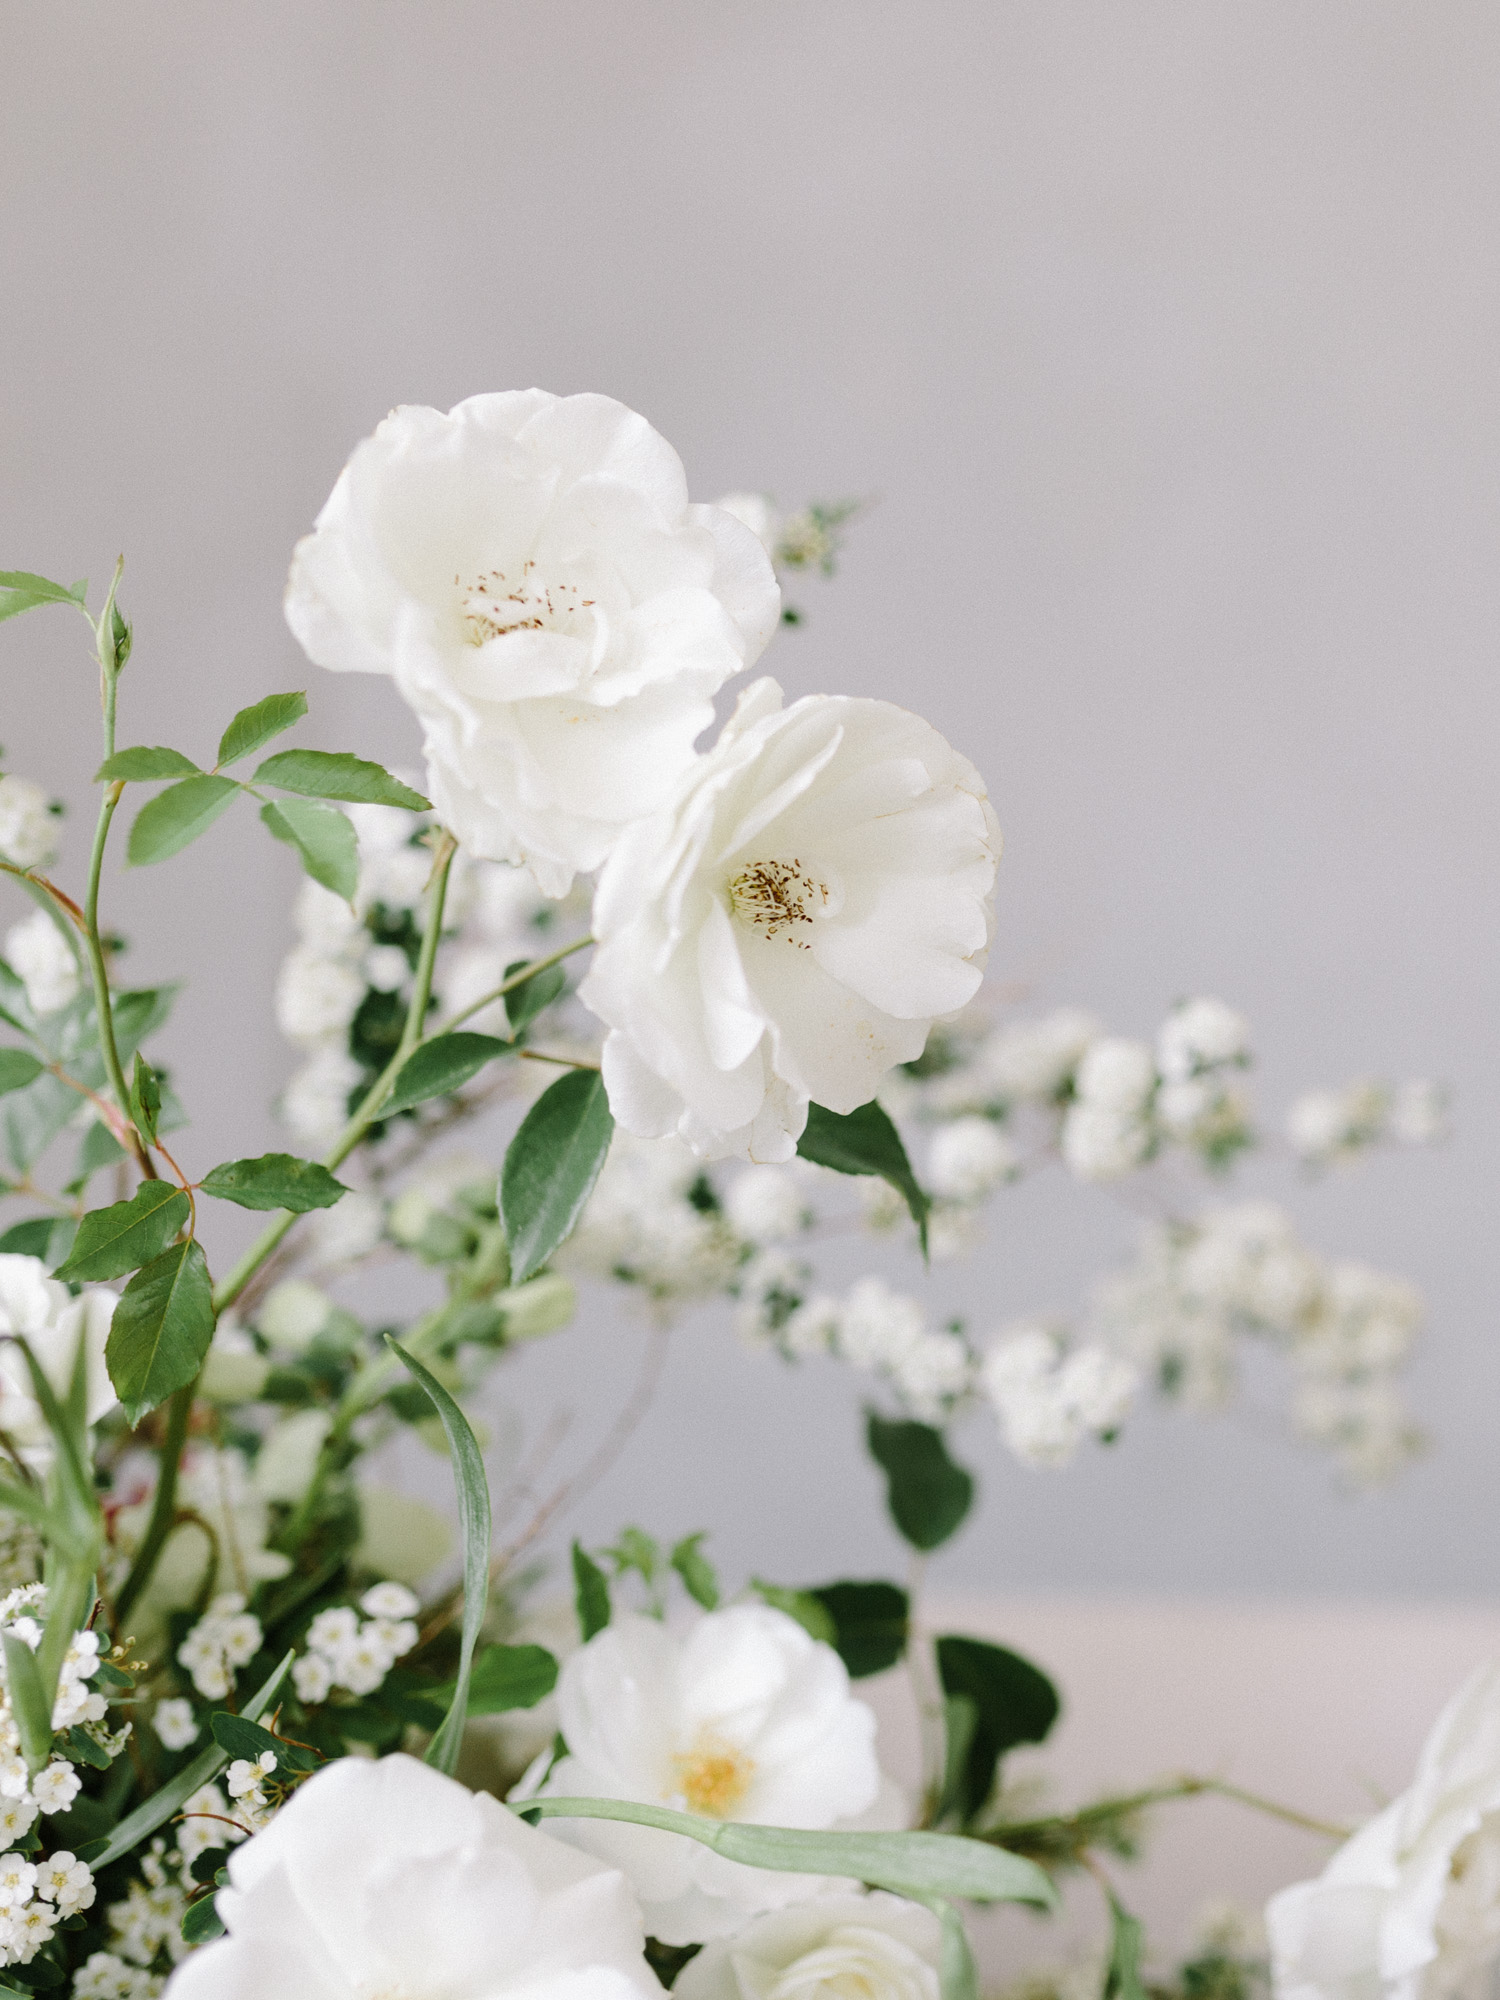 Foraged white garden roses in an untamed spring wedding centerpiece